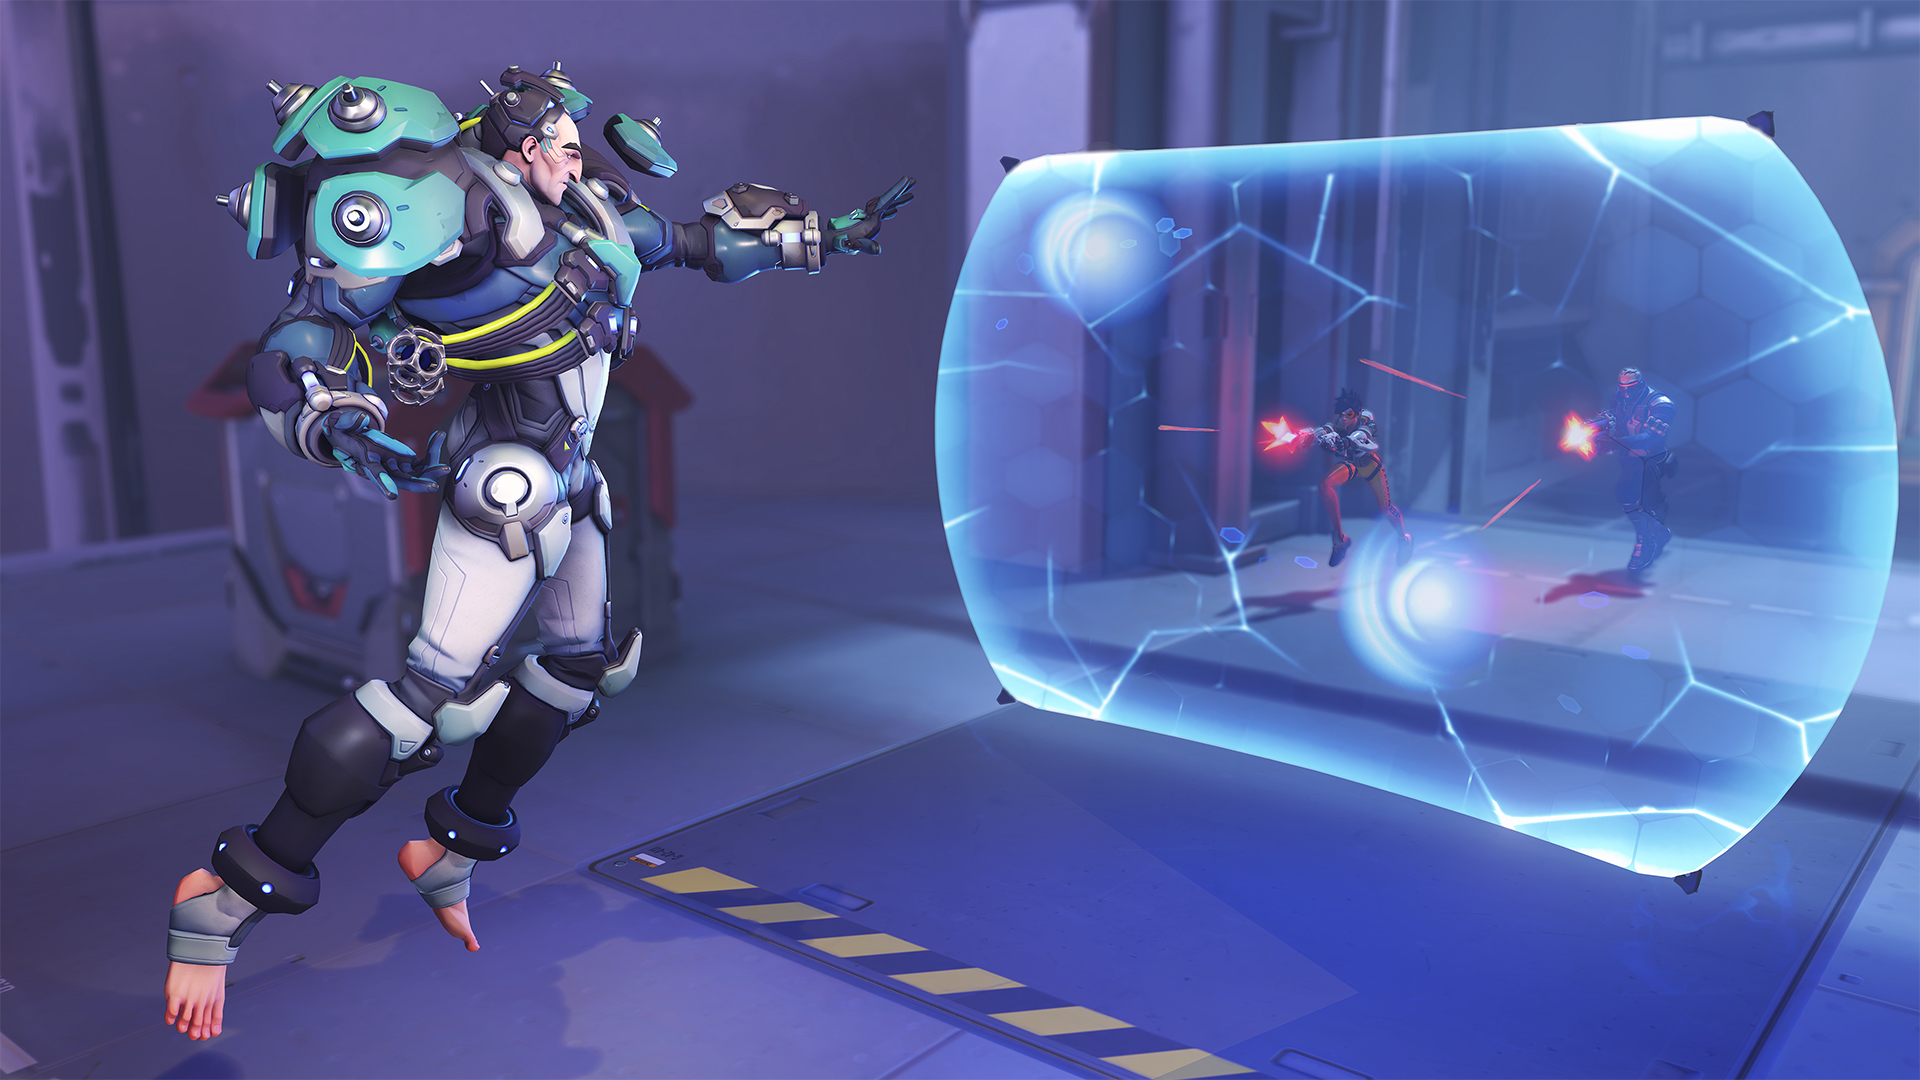 Overwatch: Sigma guide - Tips, tricks and strategy advice